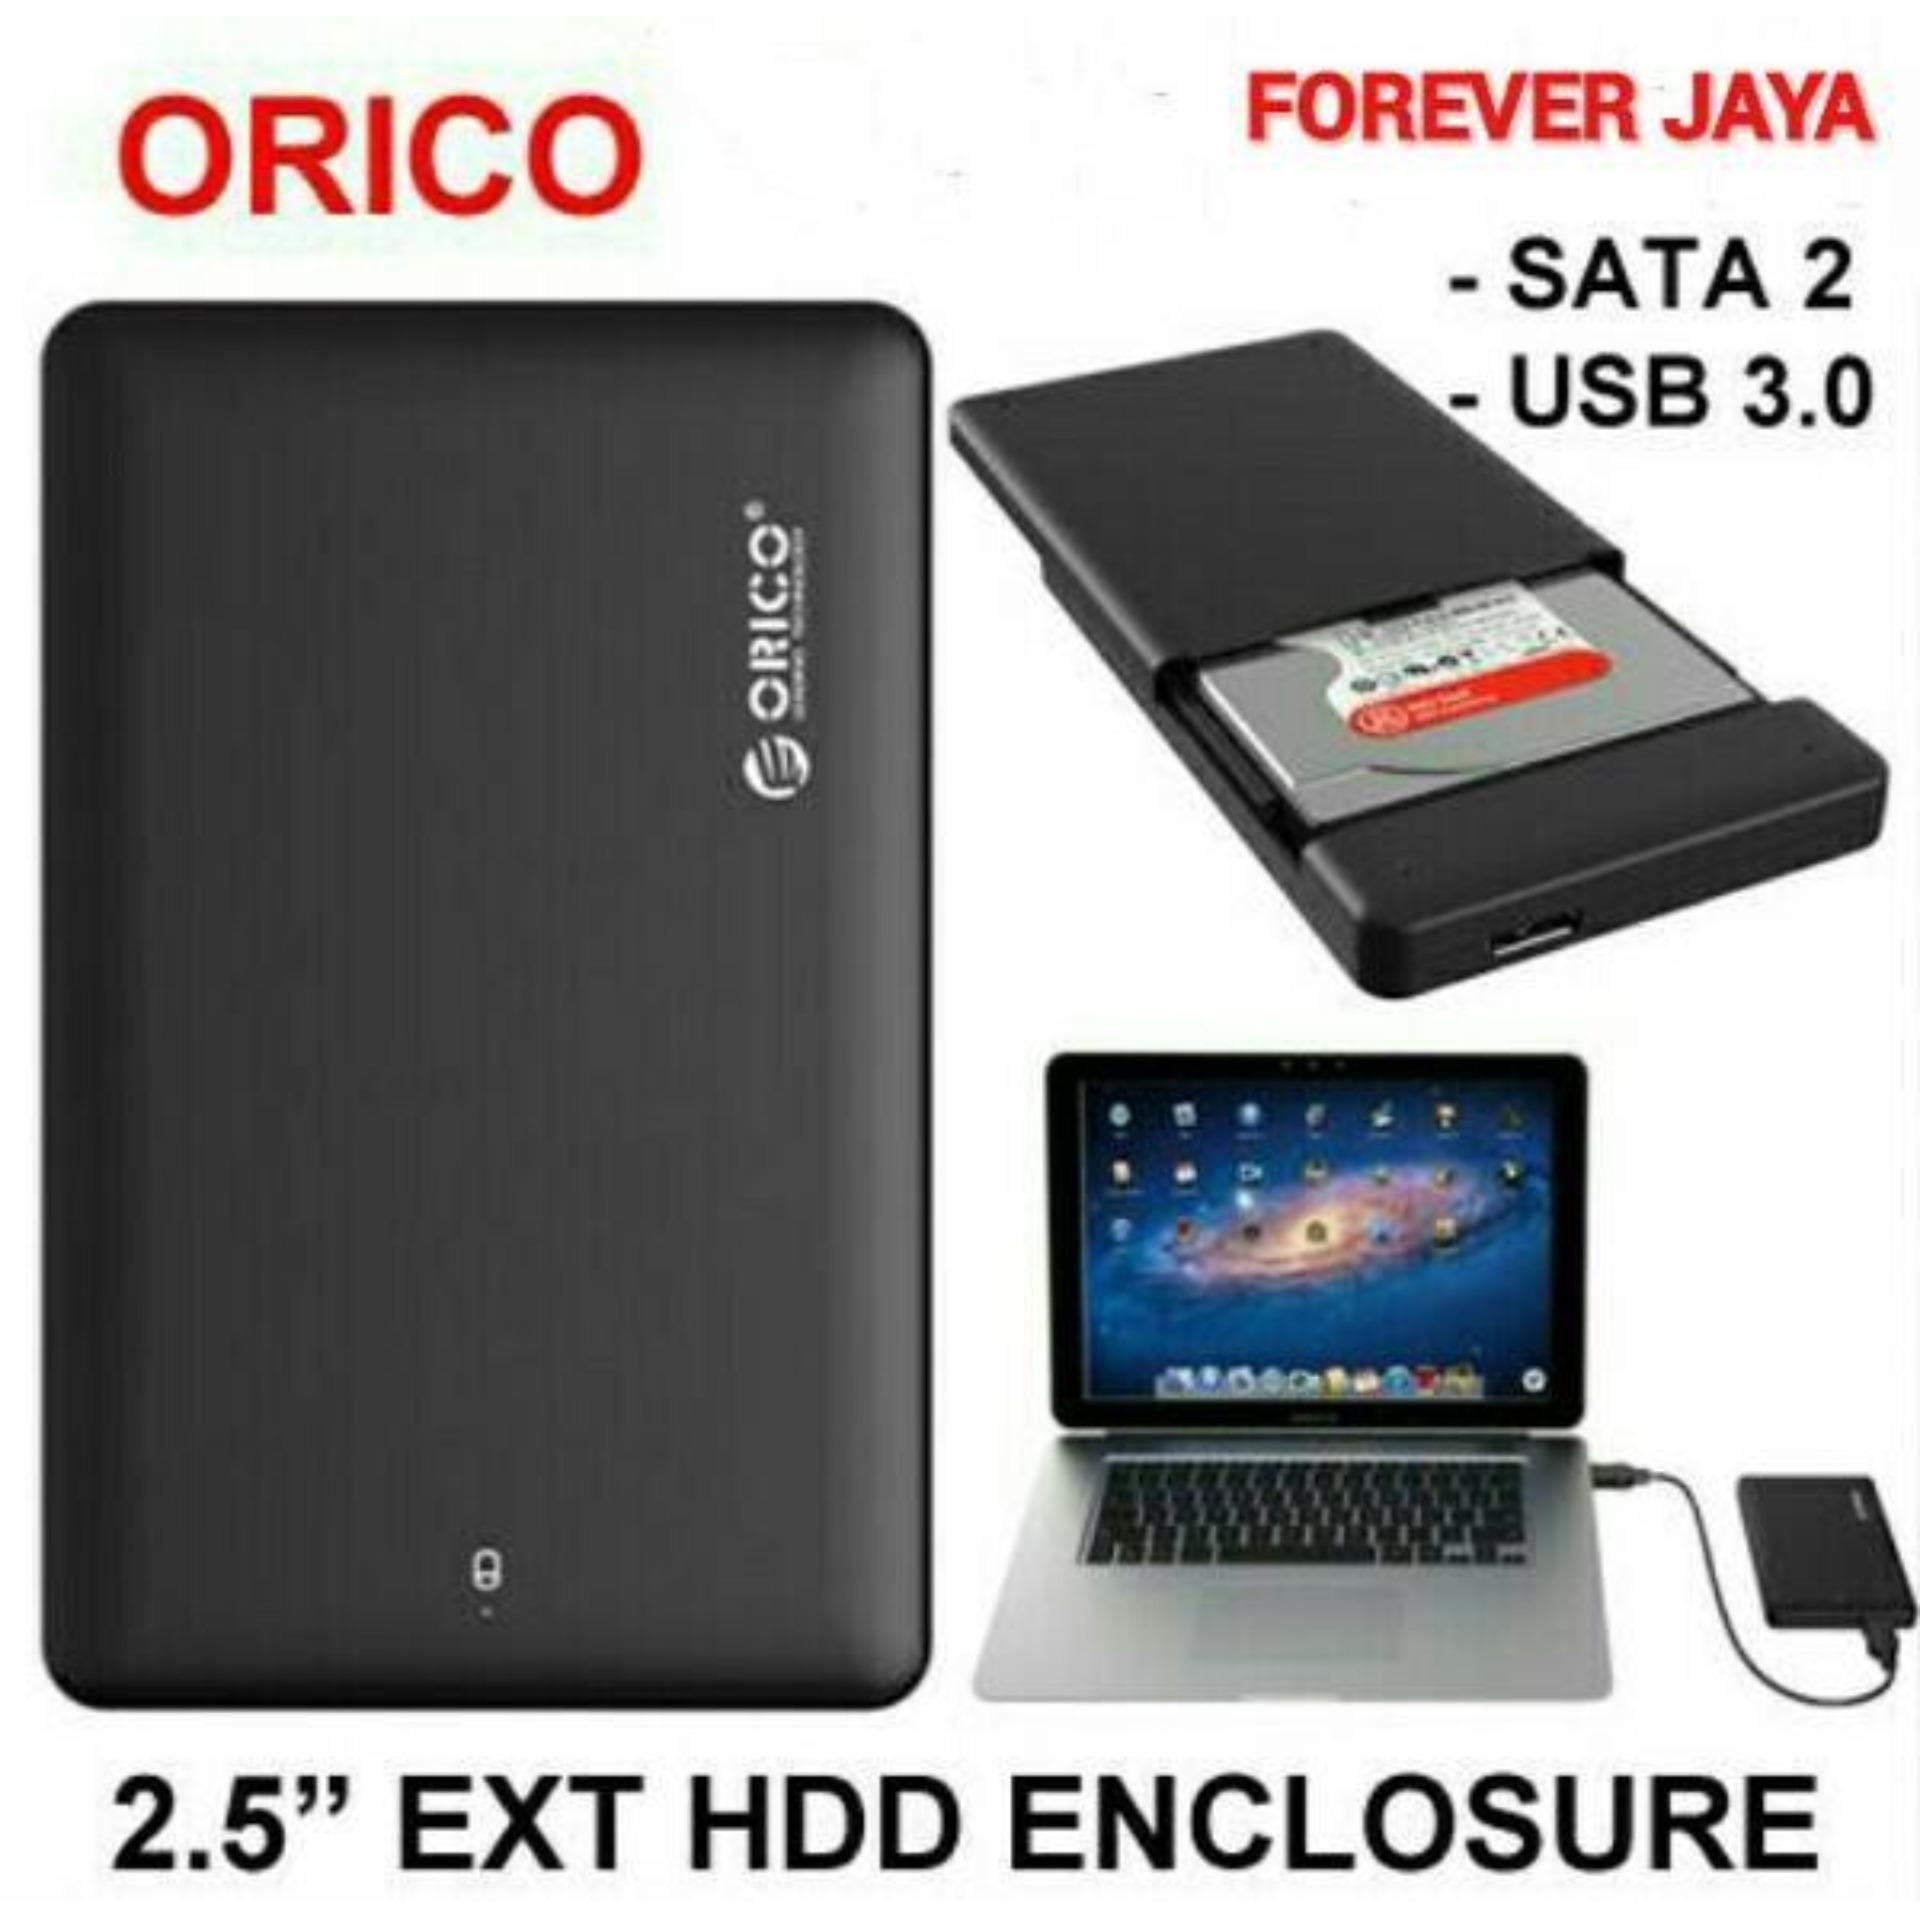 Orico - 2.5 Inch External HDD Enclosure USB 3.0 SATA 2 - Hitam .